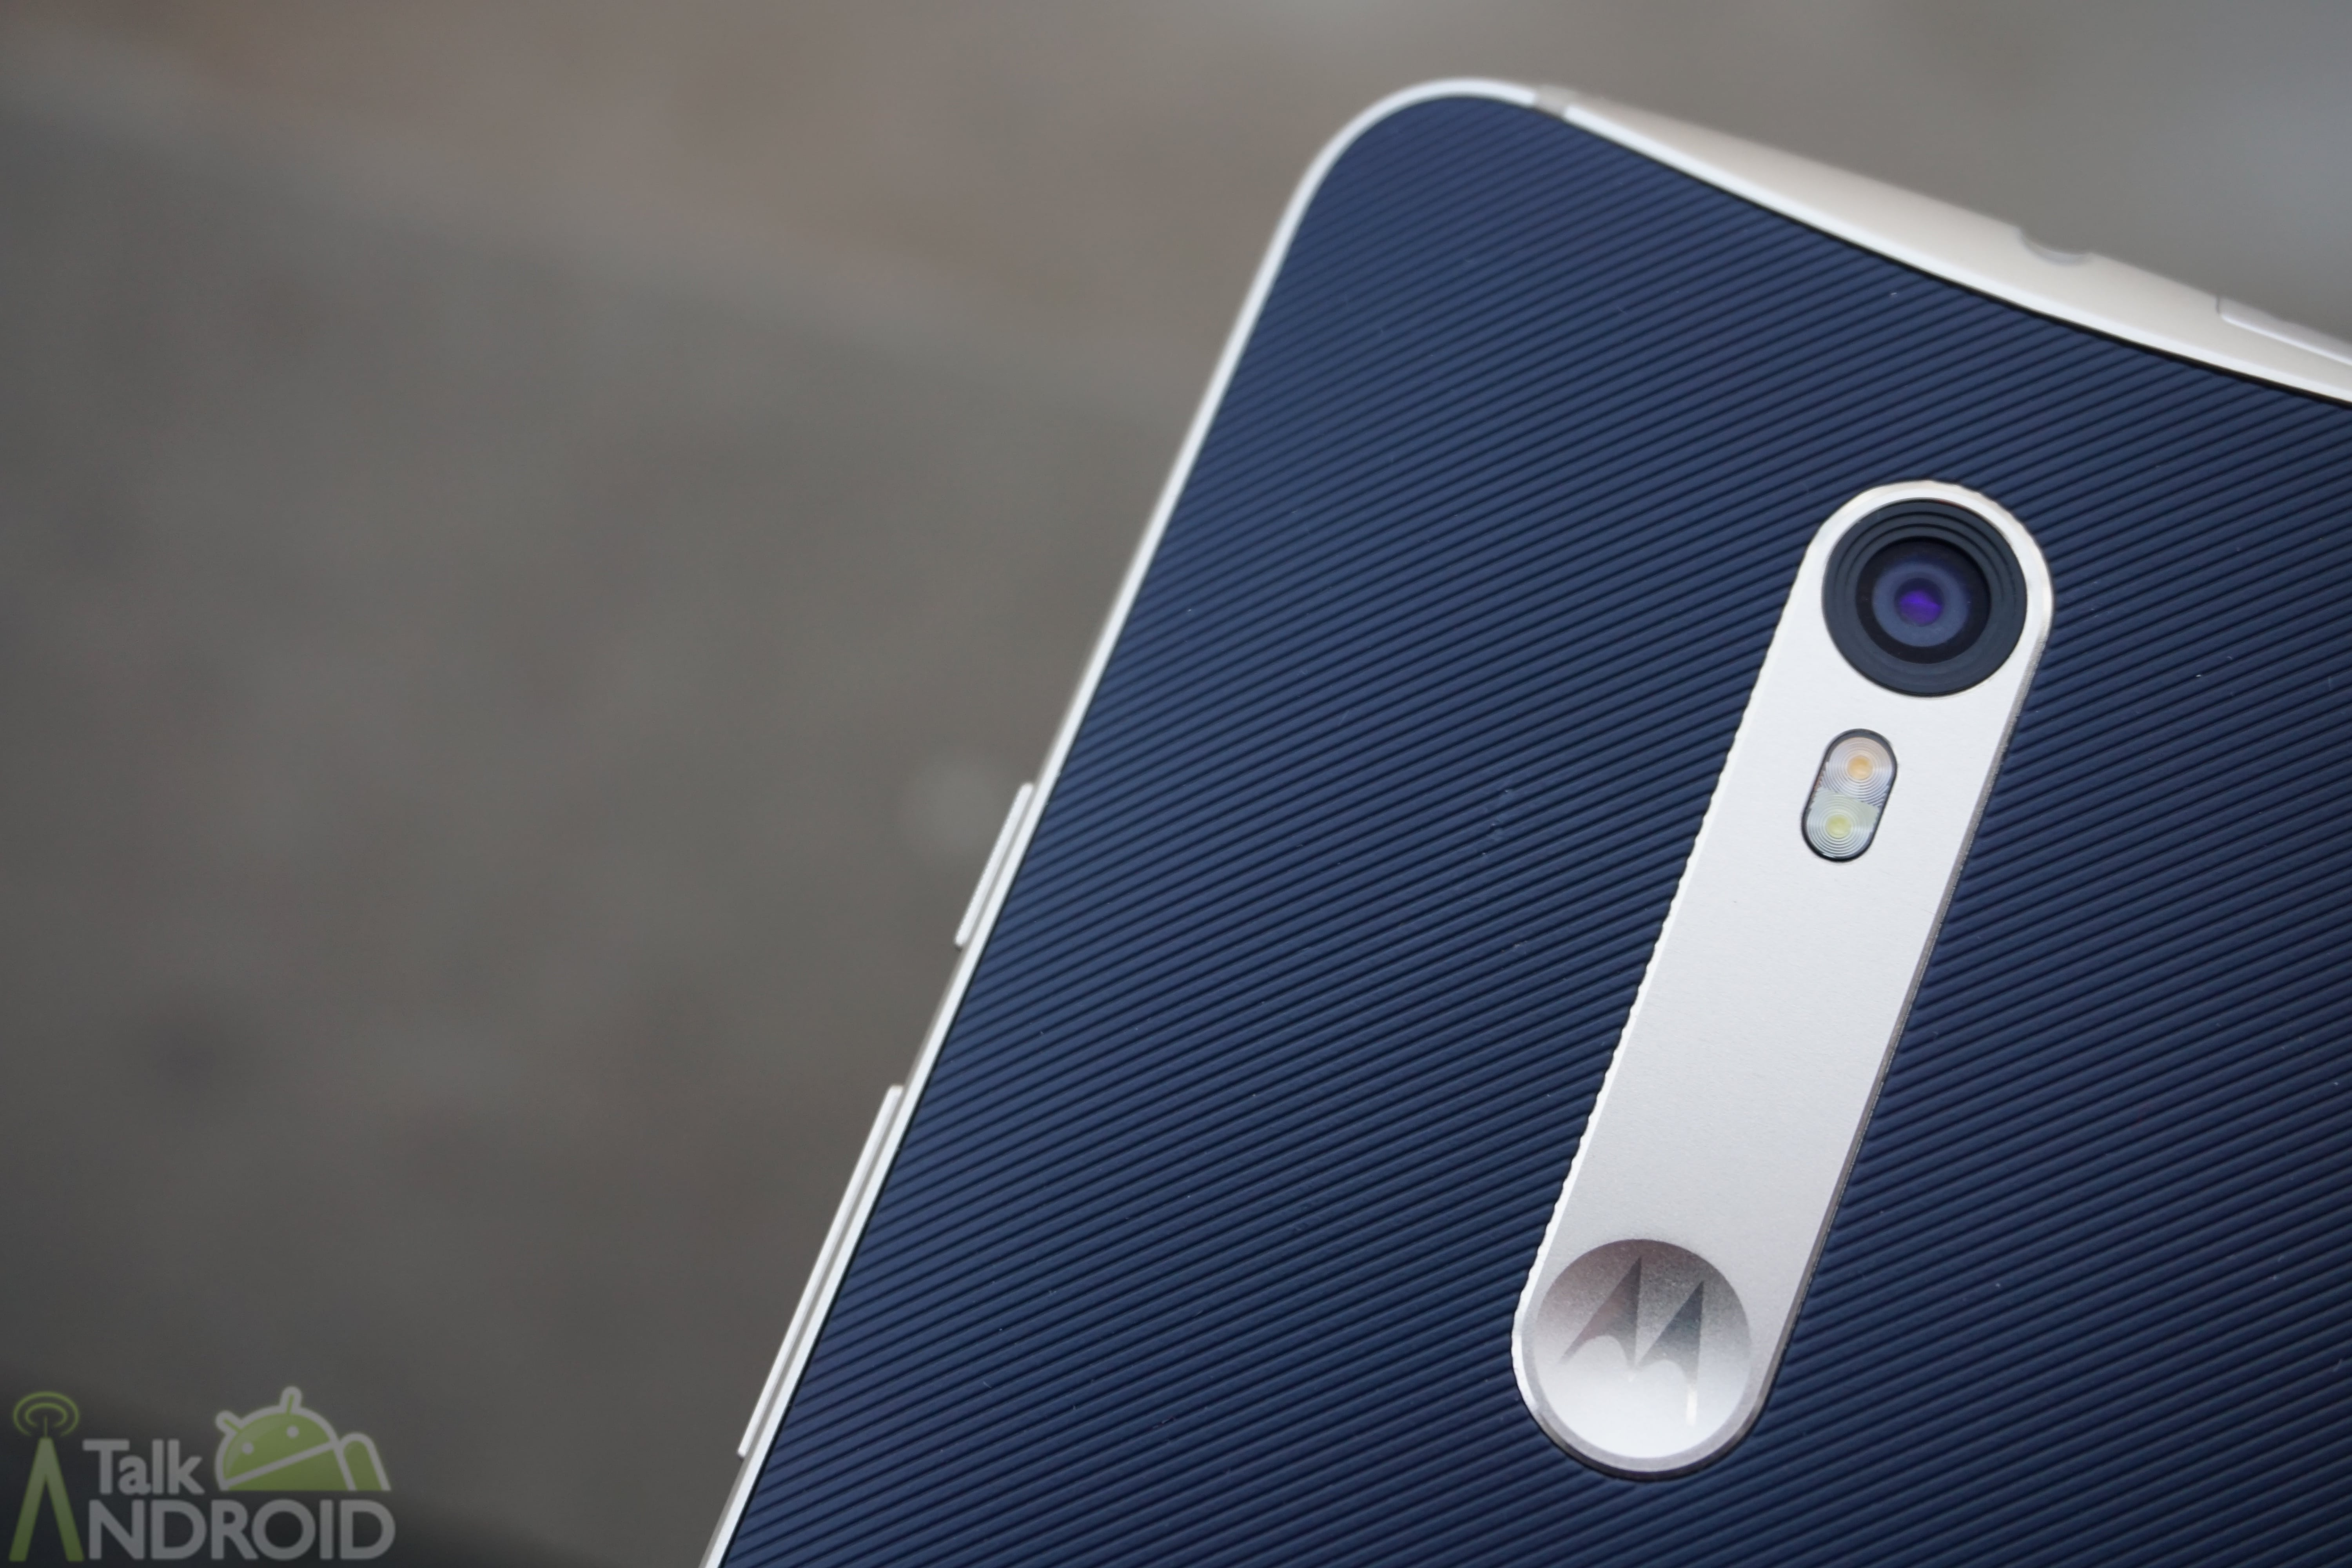 I am locked out of my moto x